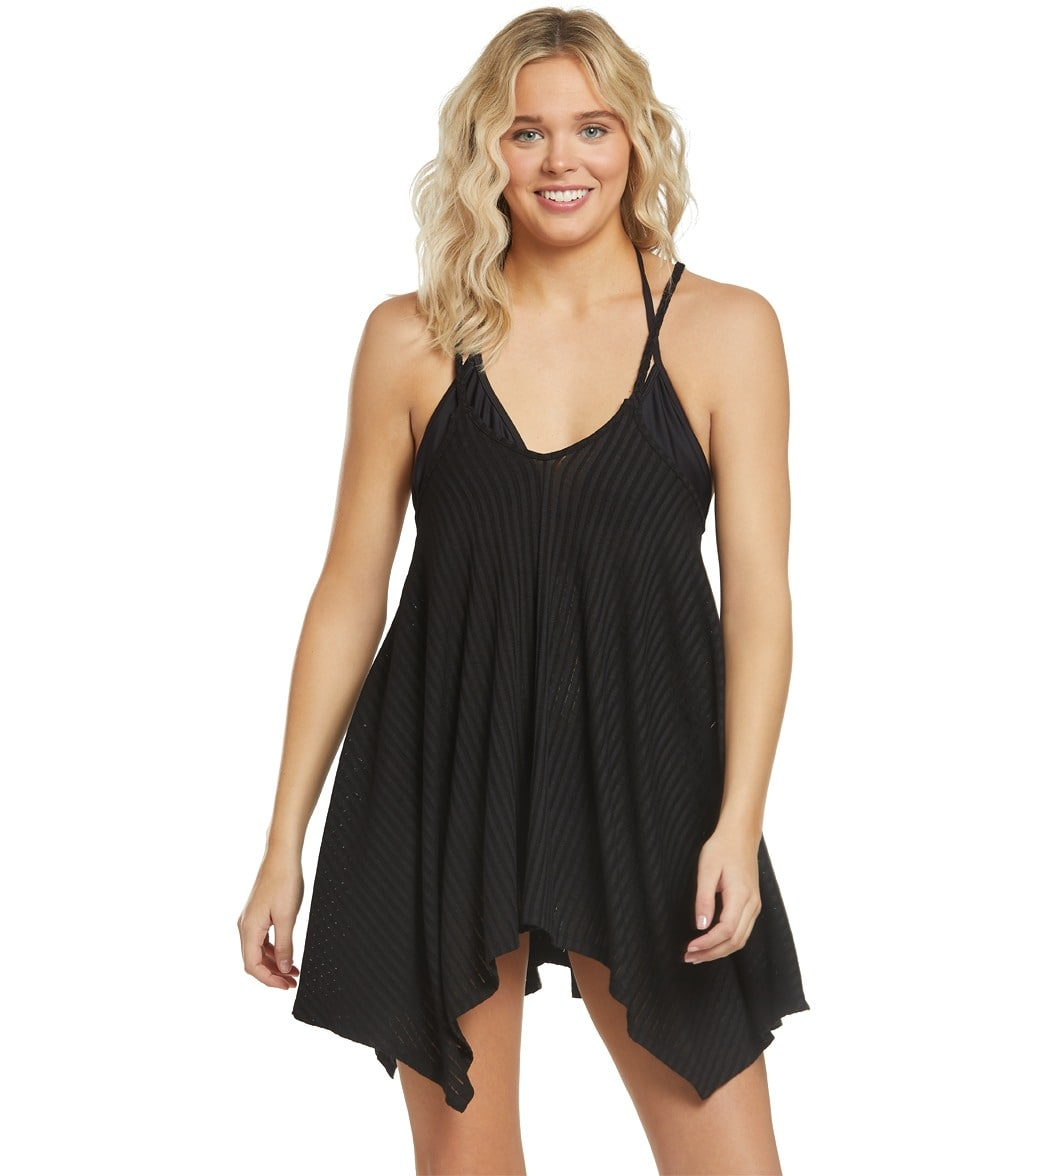 bae6f7129e Billabong Twisted View 2 Cover Up Dress at SwimOutlet.com - Free ...